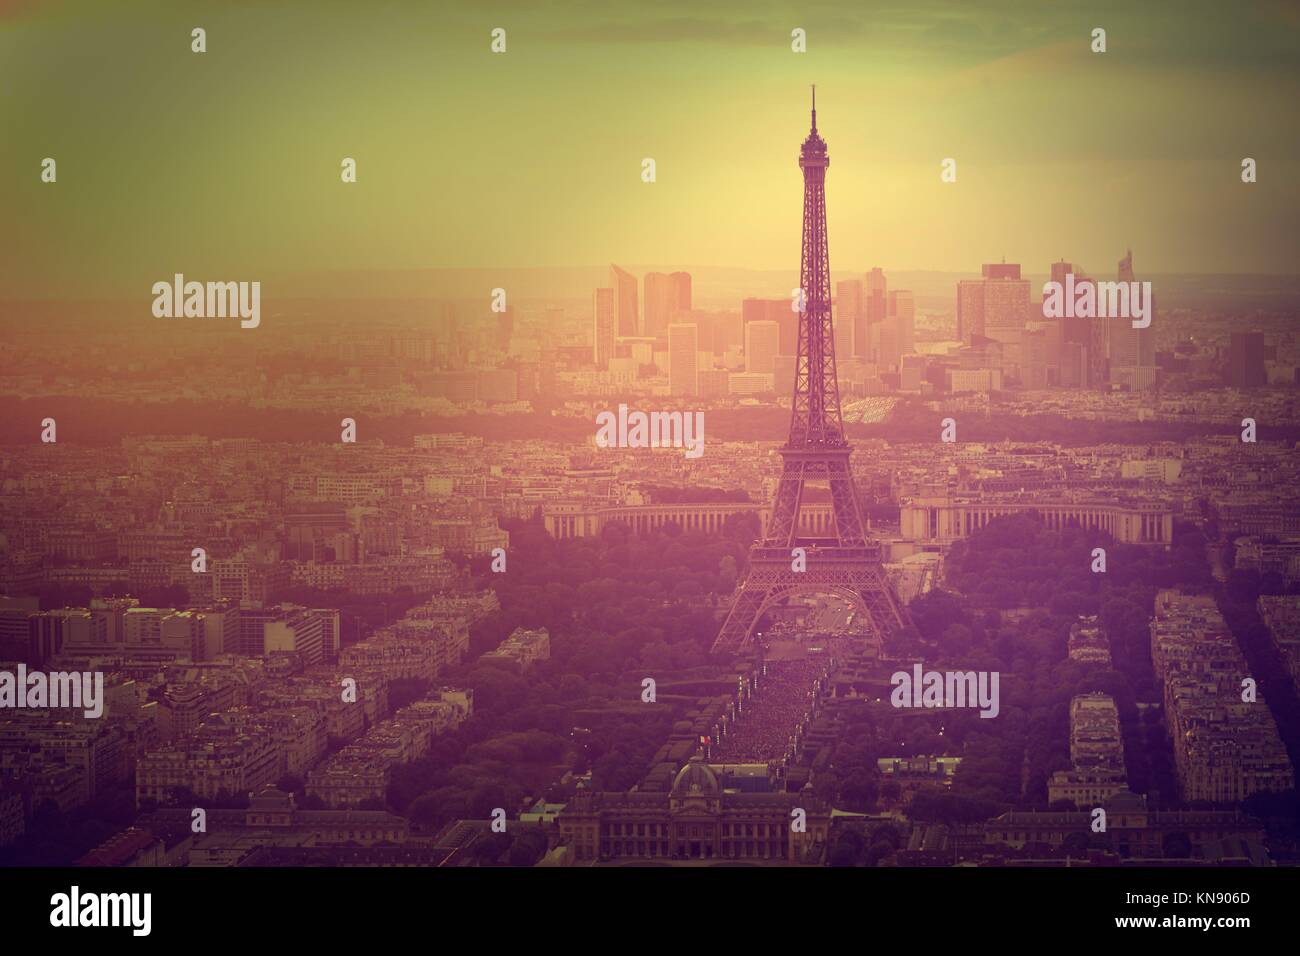 Eiffel Tower in Paris aerial sunset at France. Stock Photo